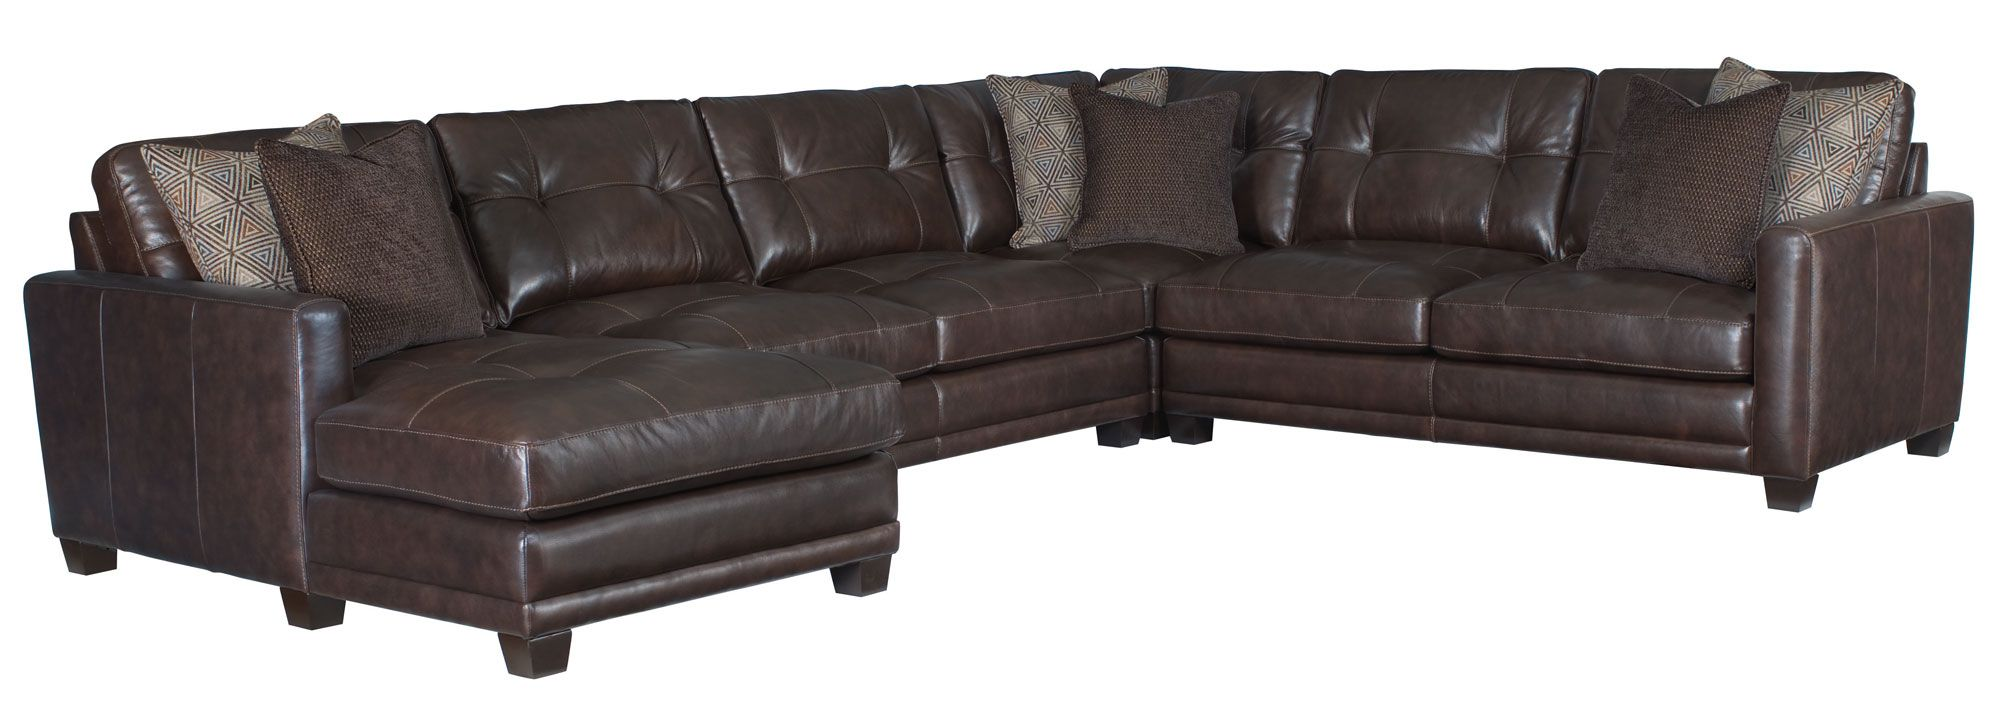 Bernhardt sectional sofa with chaise refil sofa for Bernhardt chaise